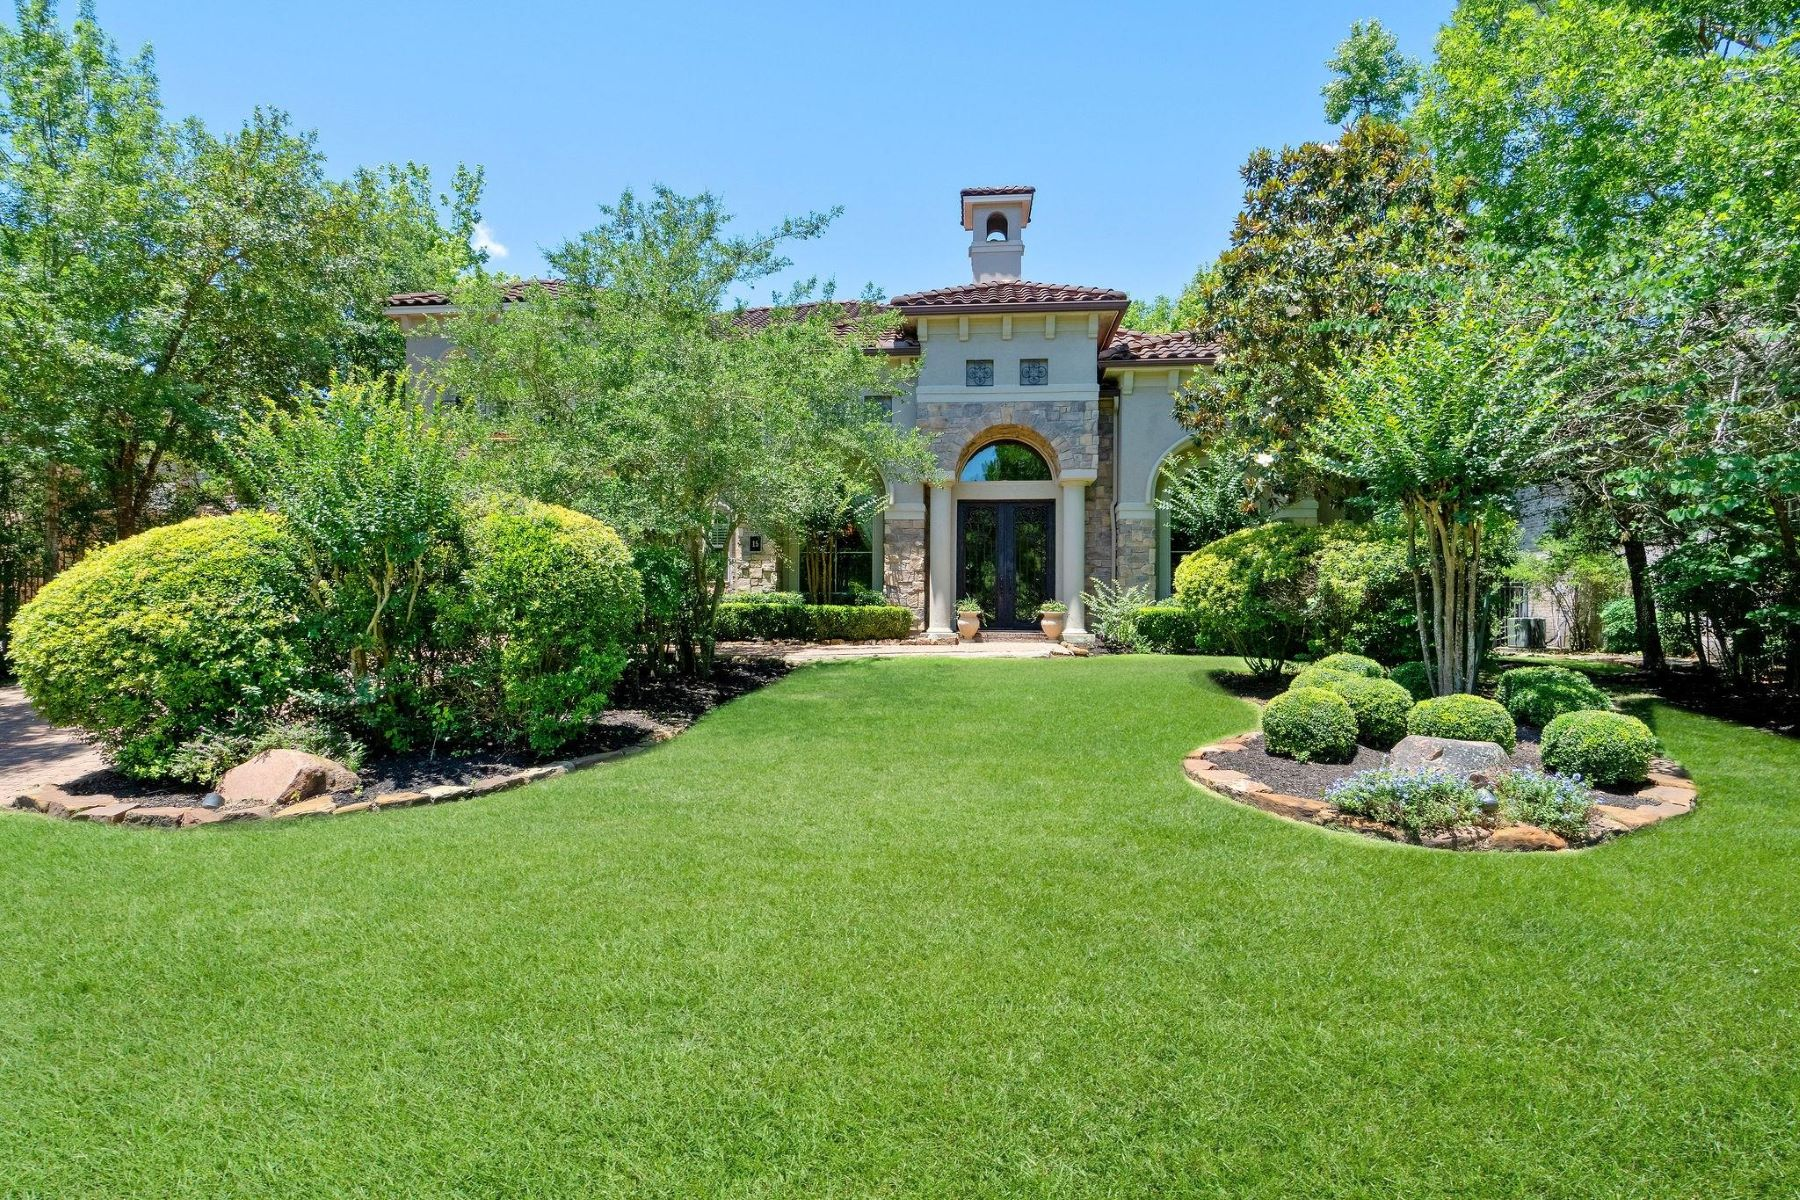 Single Family Homes for Sale at 15 Hunnewell Way The Woodlands, Texas 77382 United States